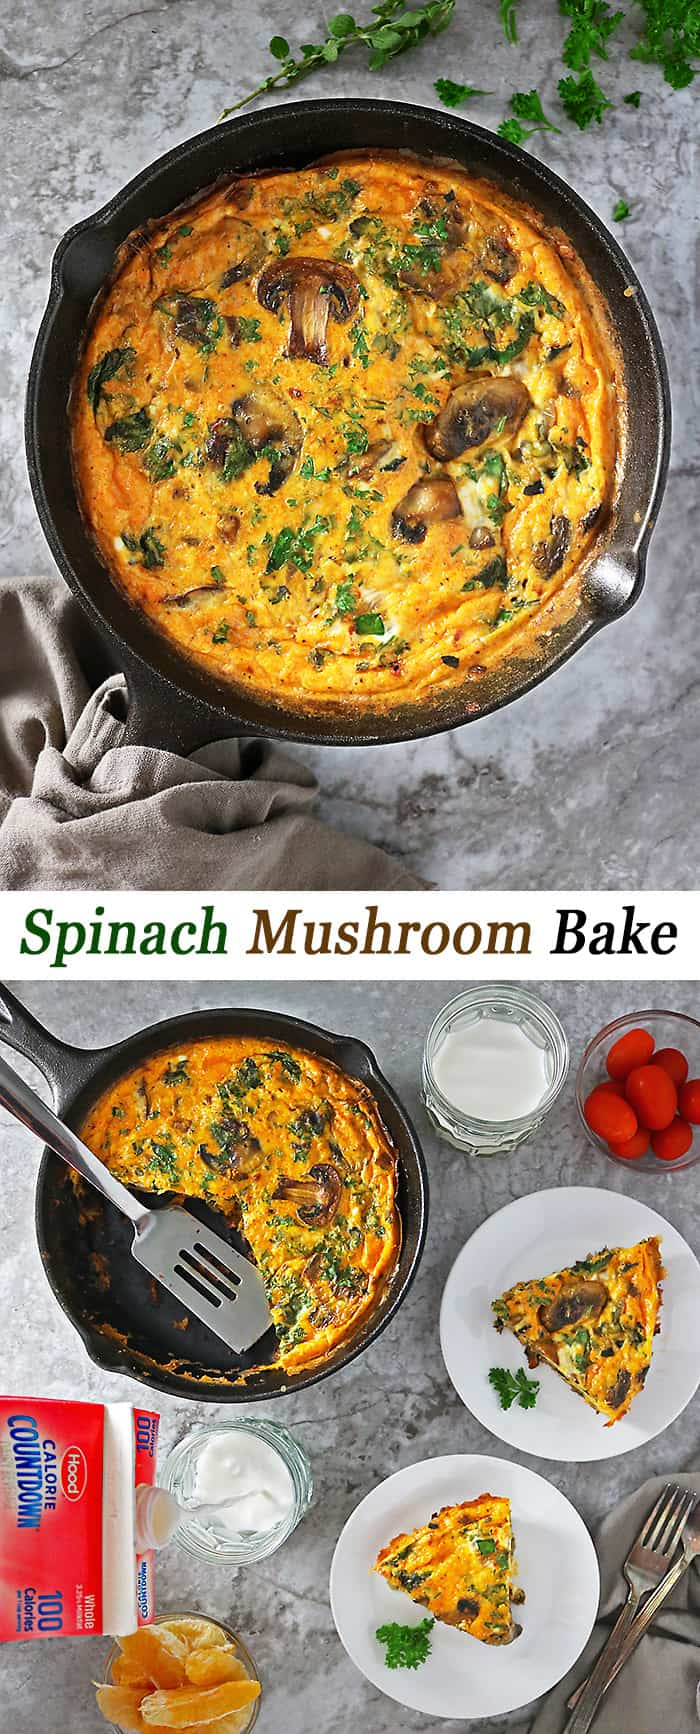 Low carb, spiced, turmeric Spinach Mushroom Bake 